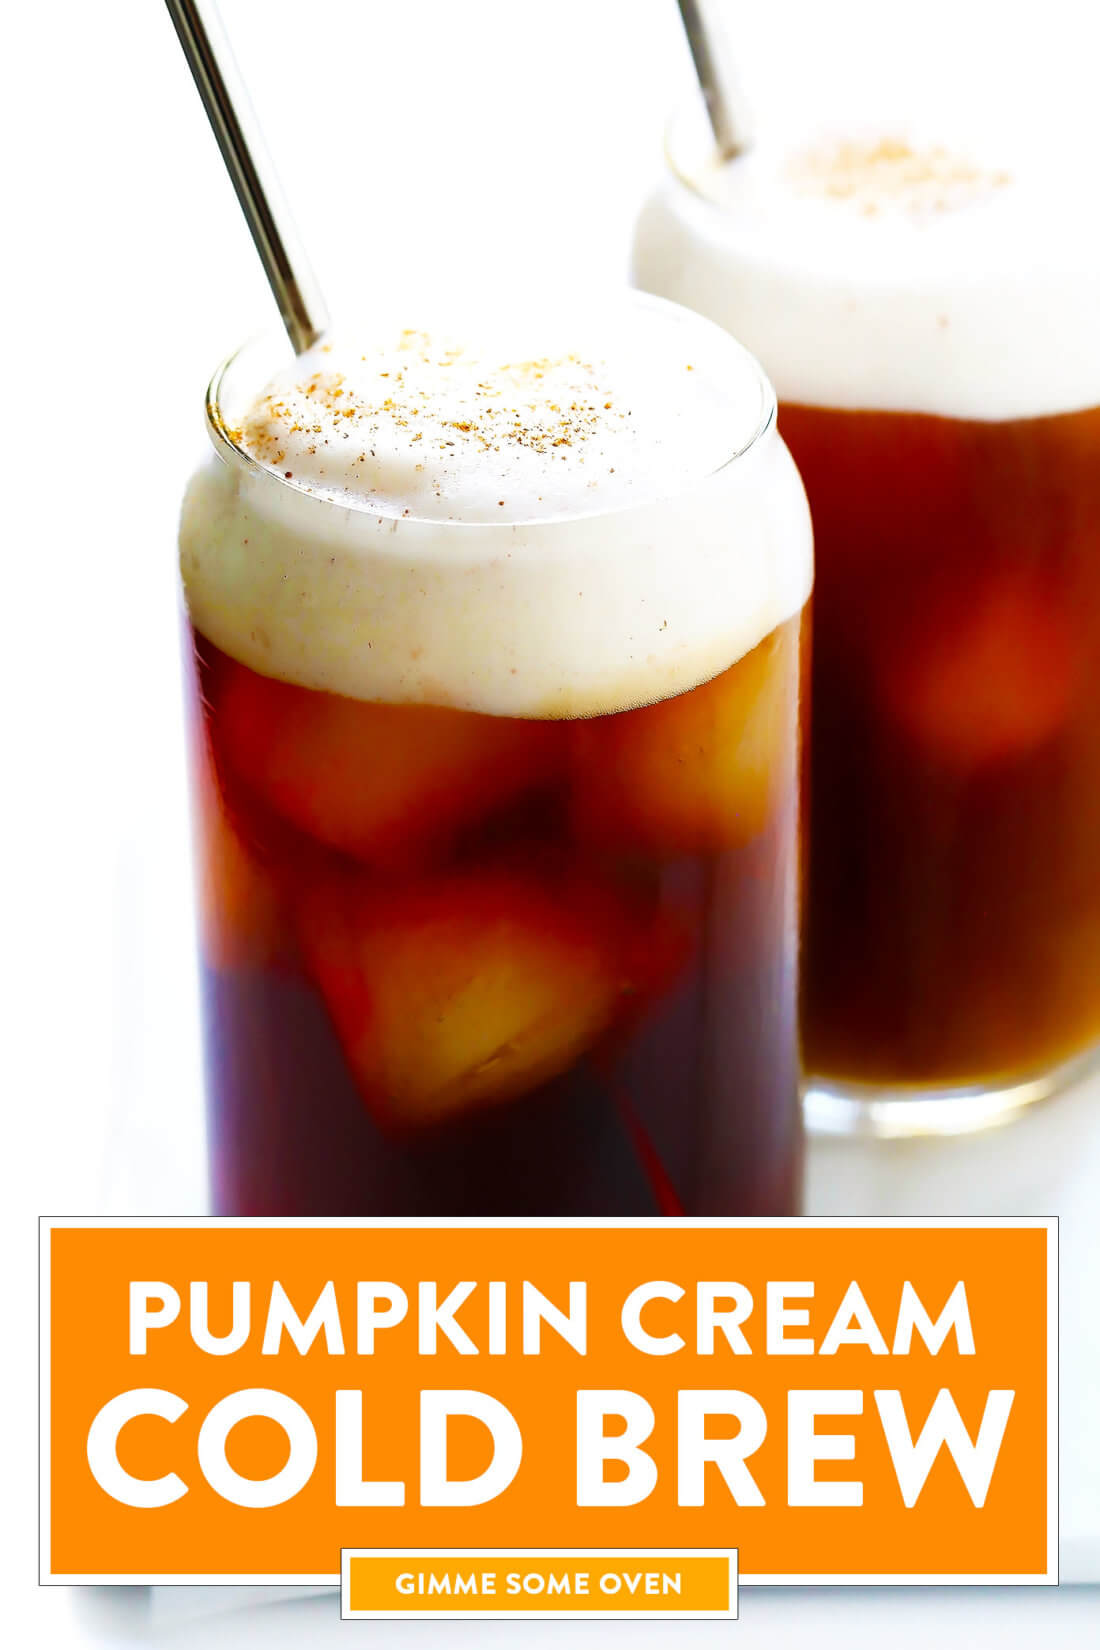 Pumpkin Cream Cold Brew Coffee